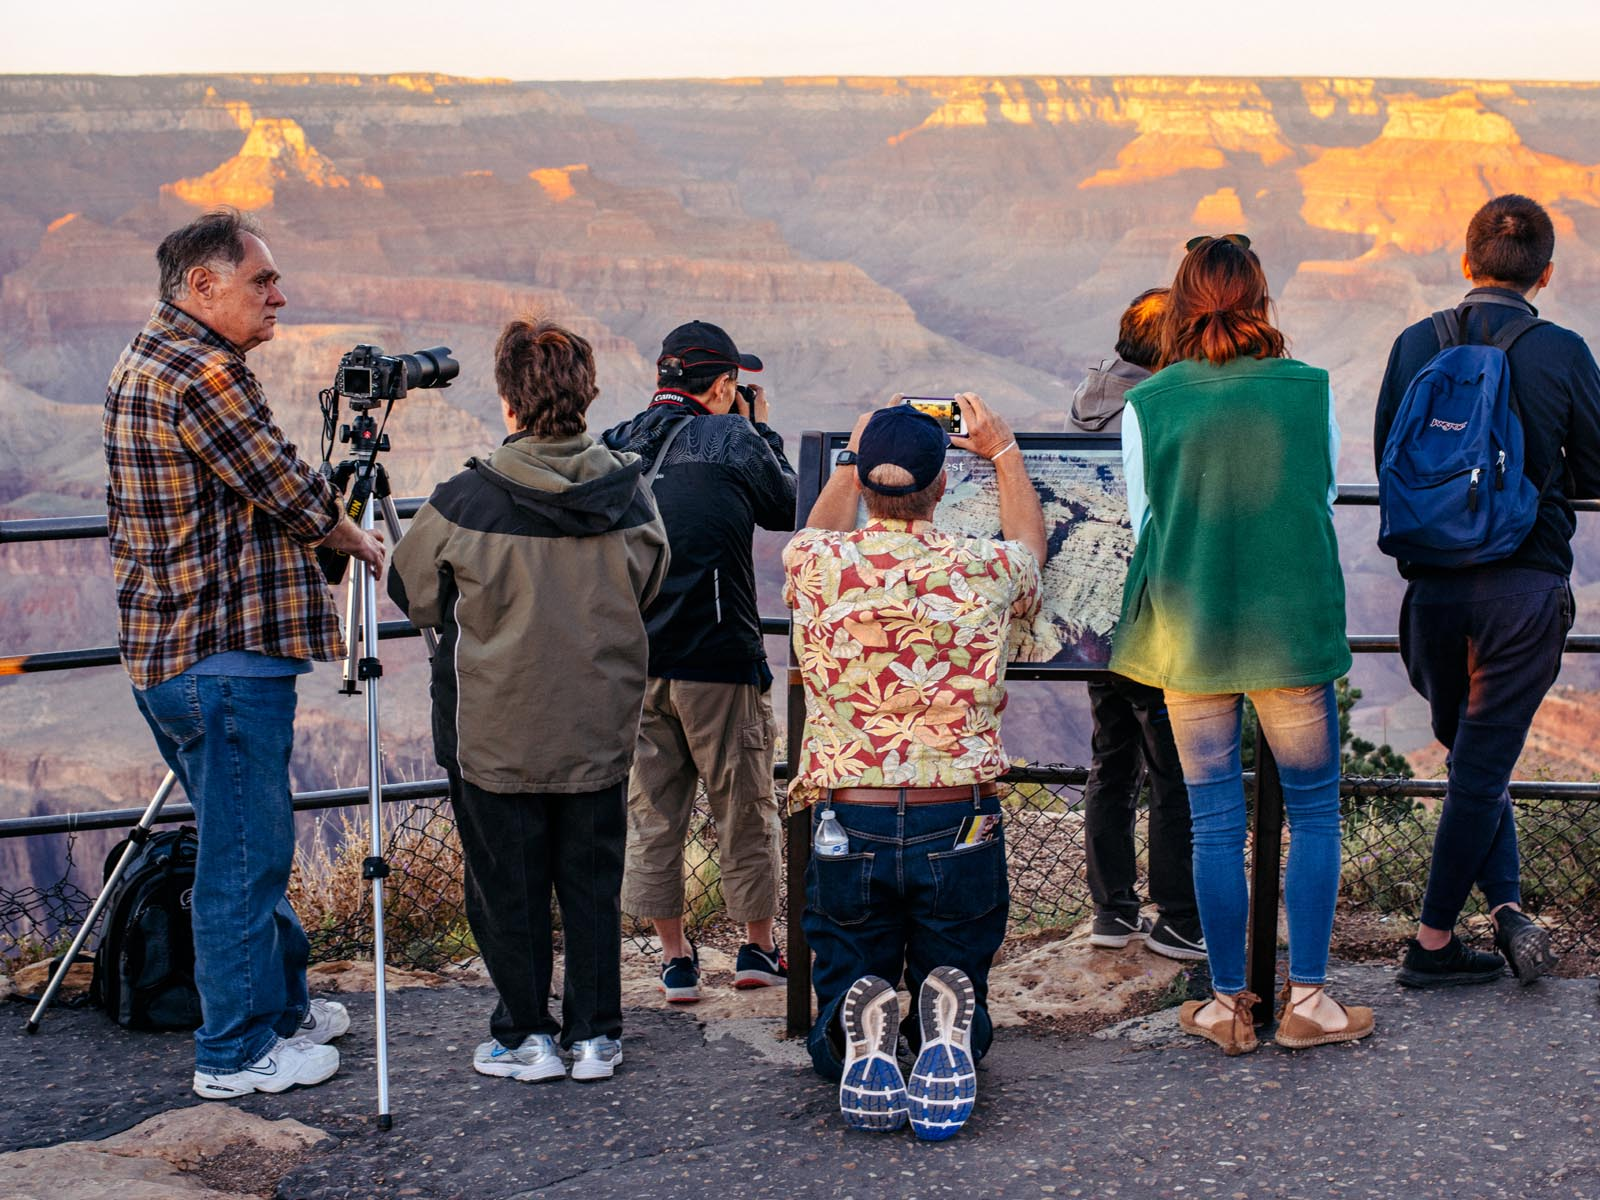 Everybody is a travel photographer at the Grand Canyon.